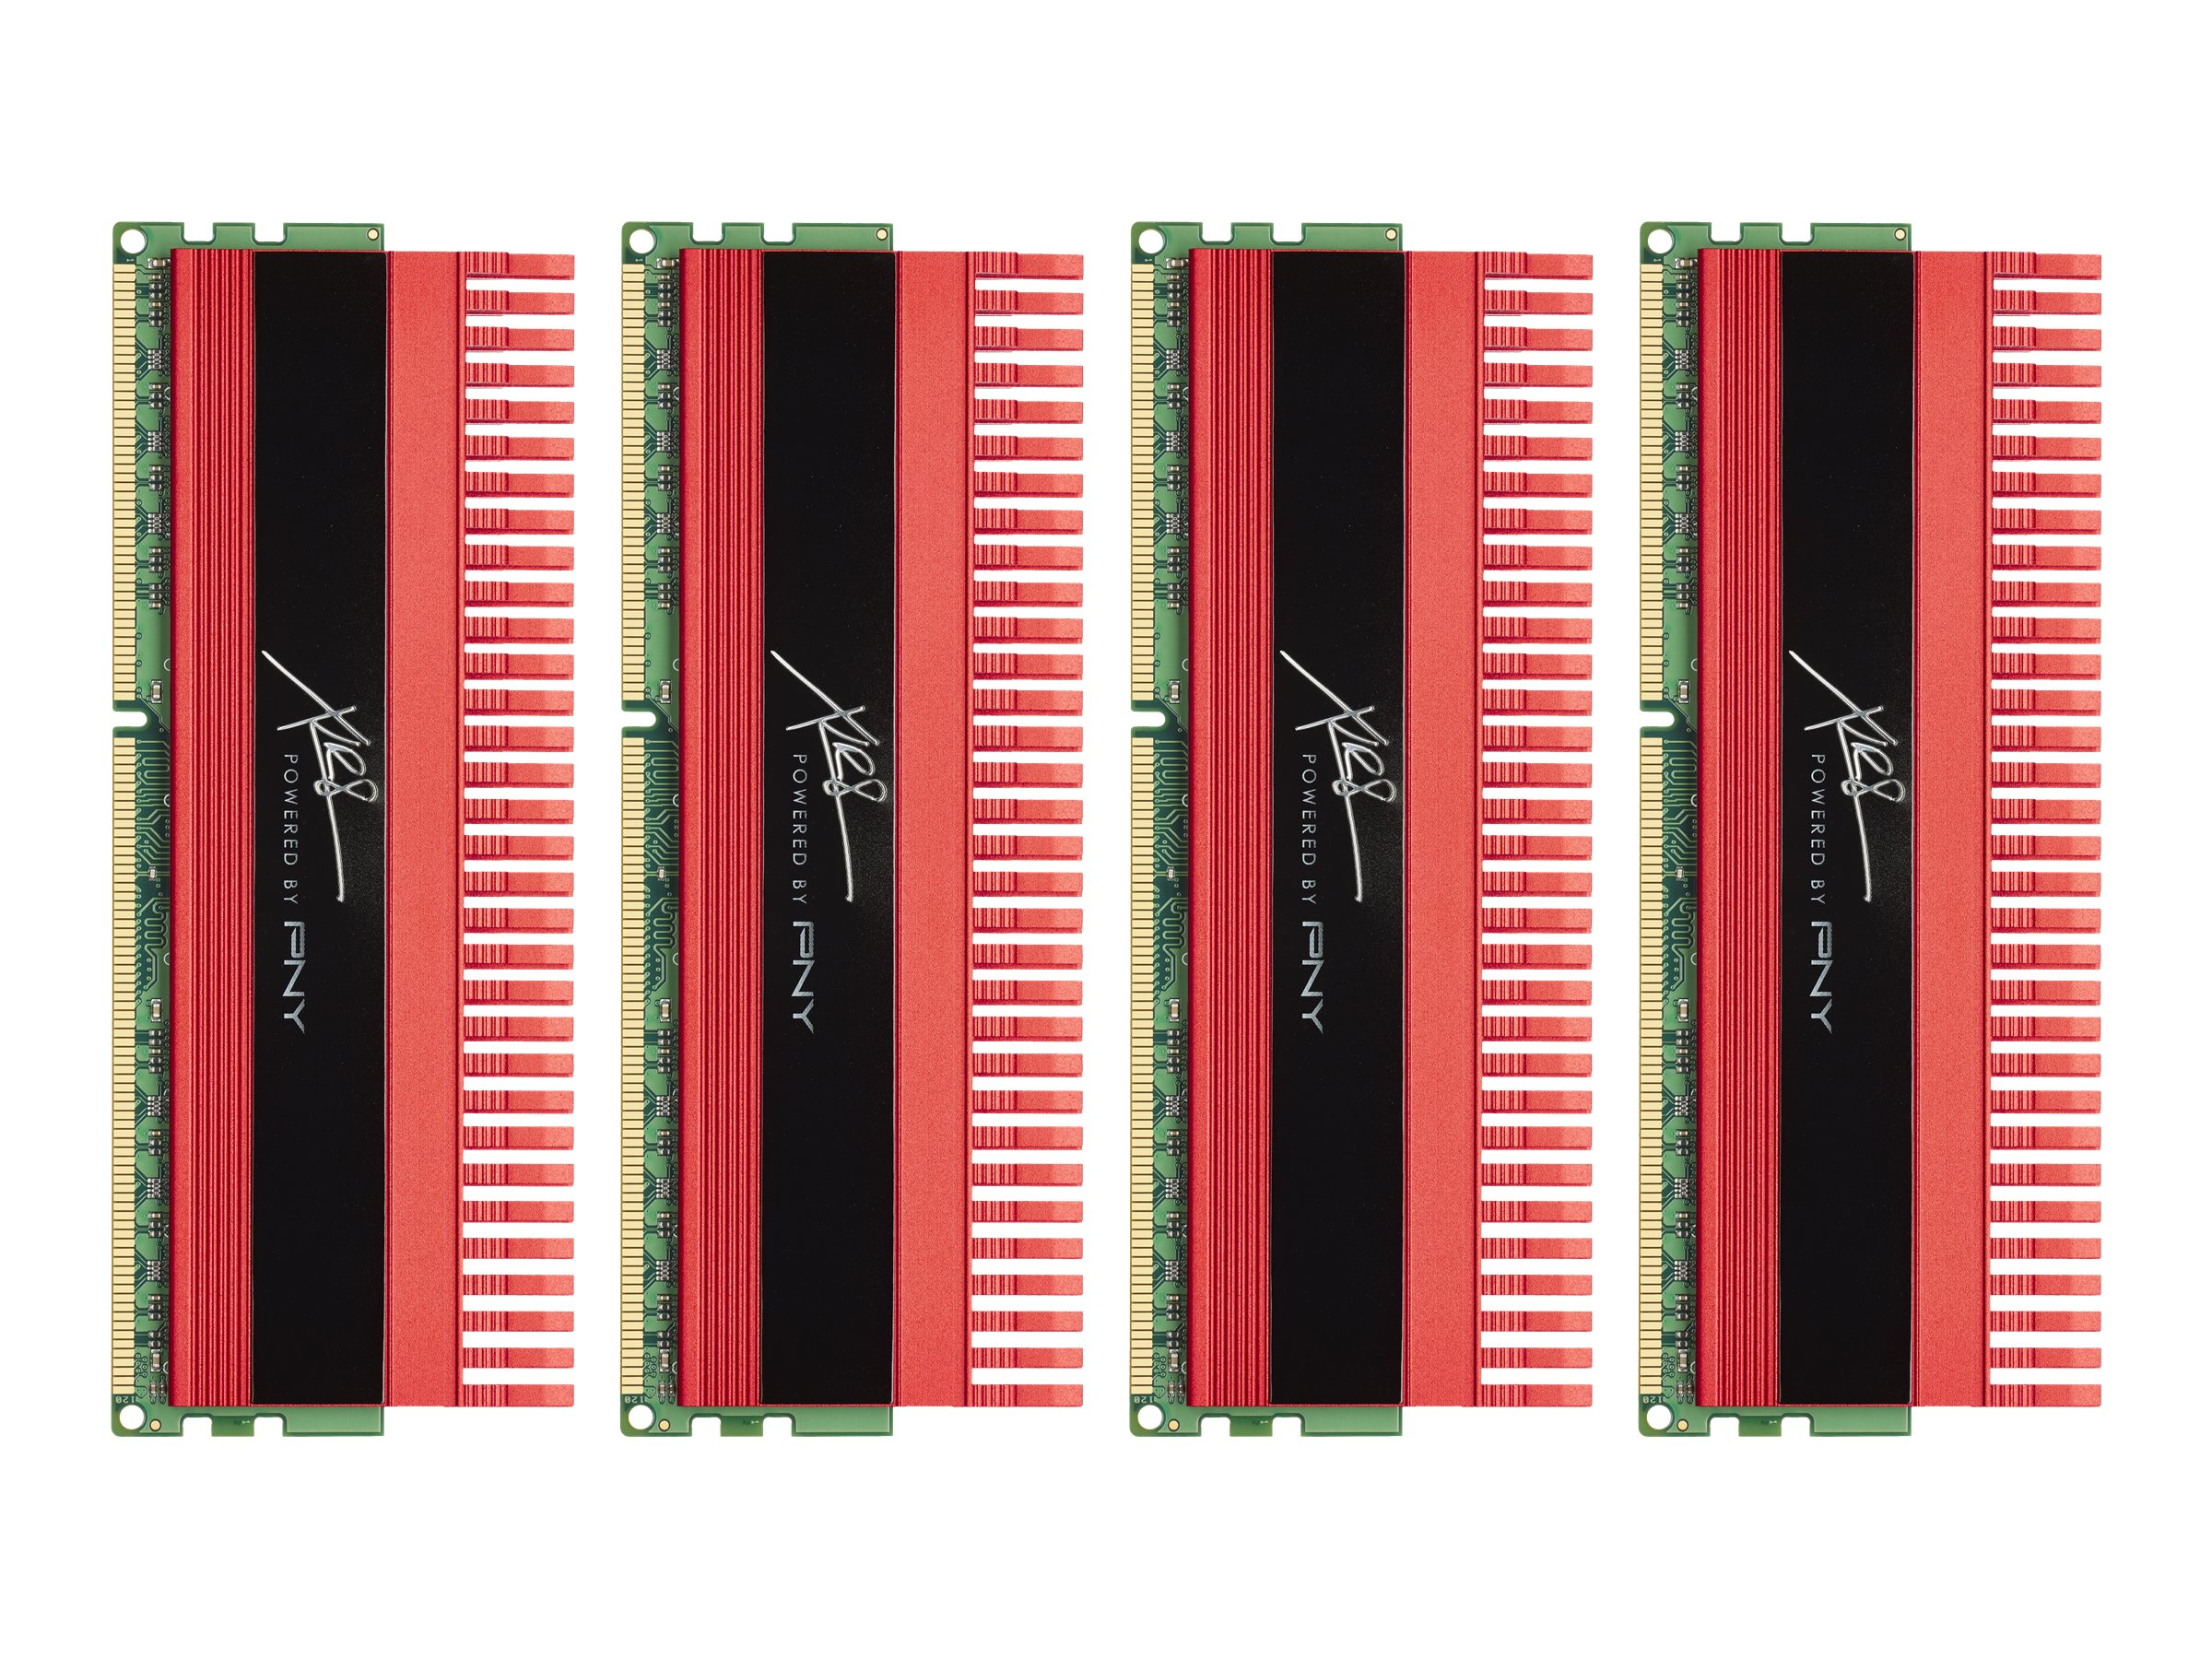 PNY 16GB PC3-17000 240-pin DDR3 SDRAM DIMM Kit, MD16384K4D3-2133-X10, 13769302, Memory